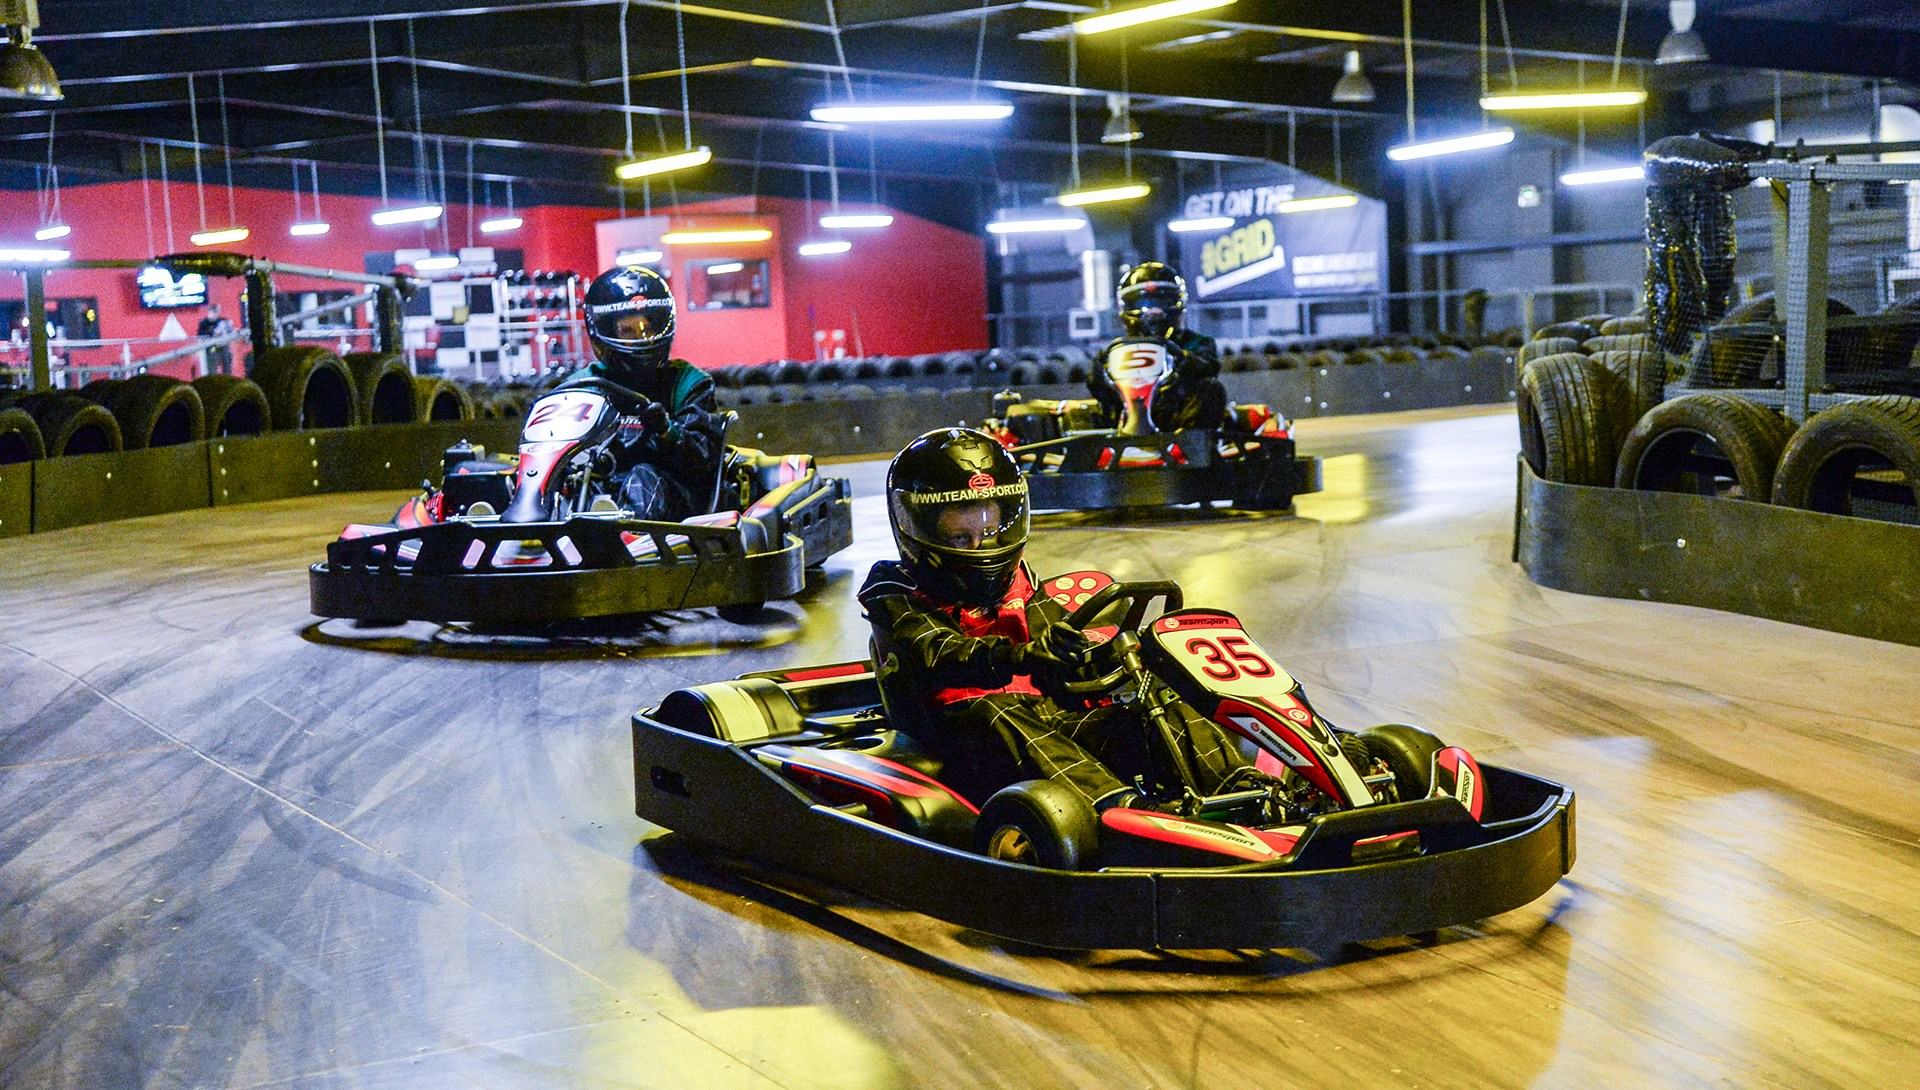 School holidays Offers and Events - Open Timed Race Sessions